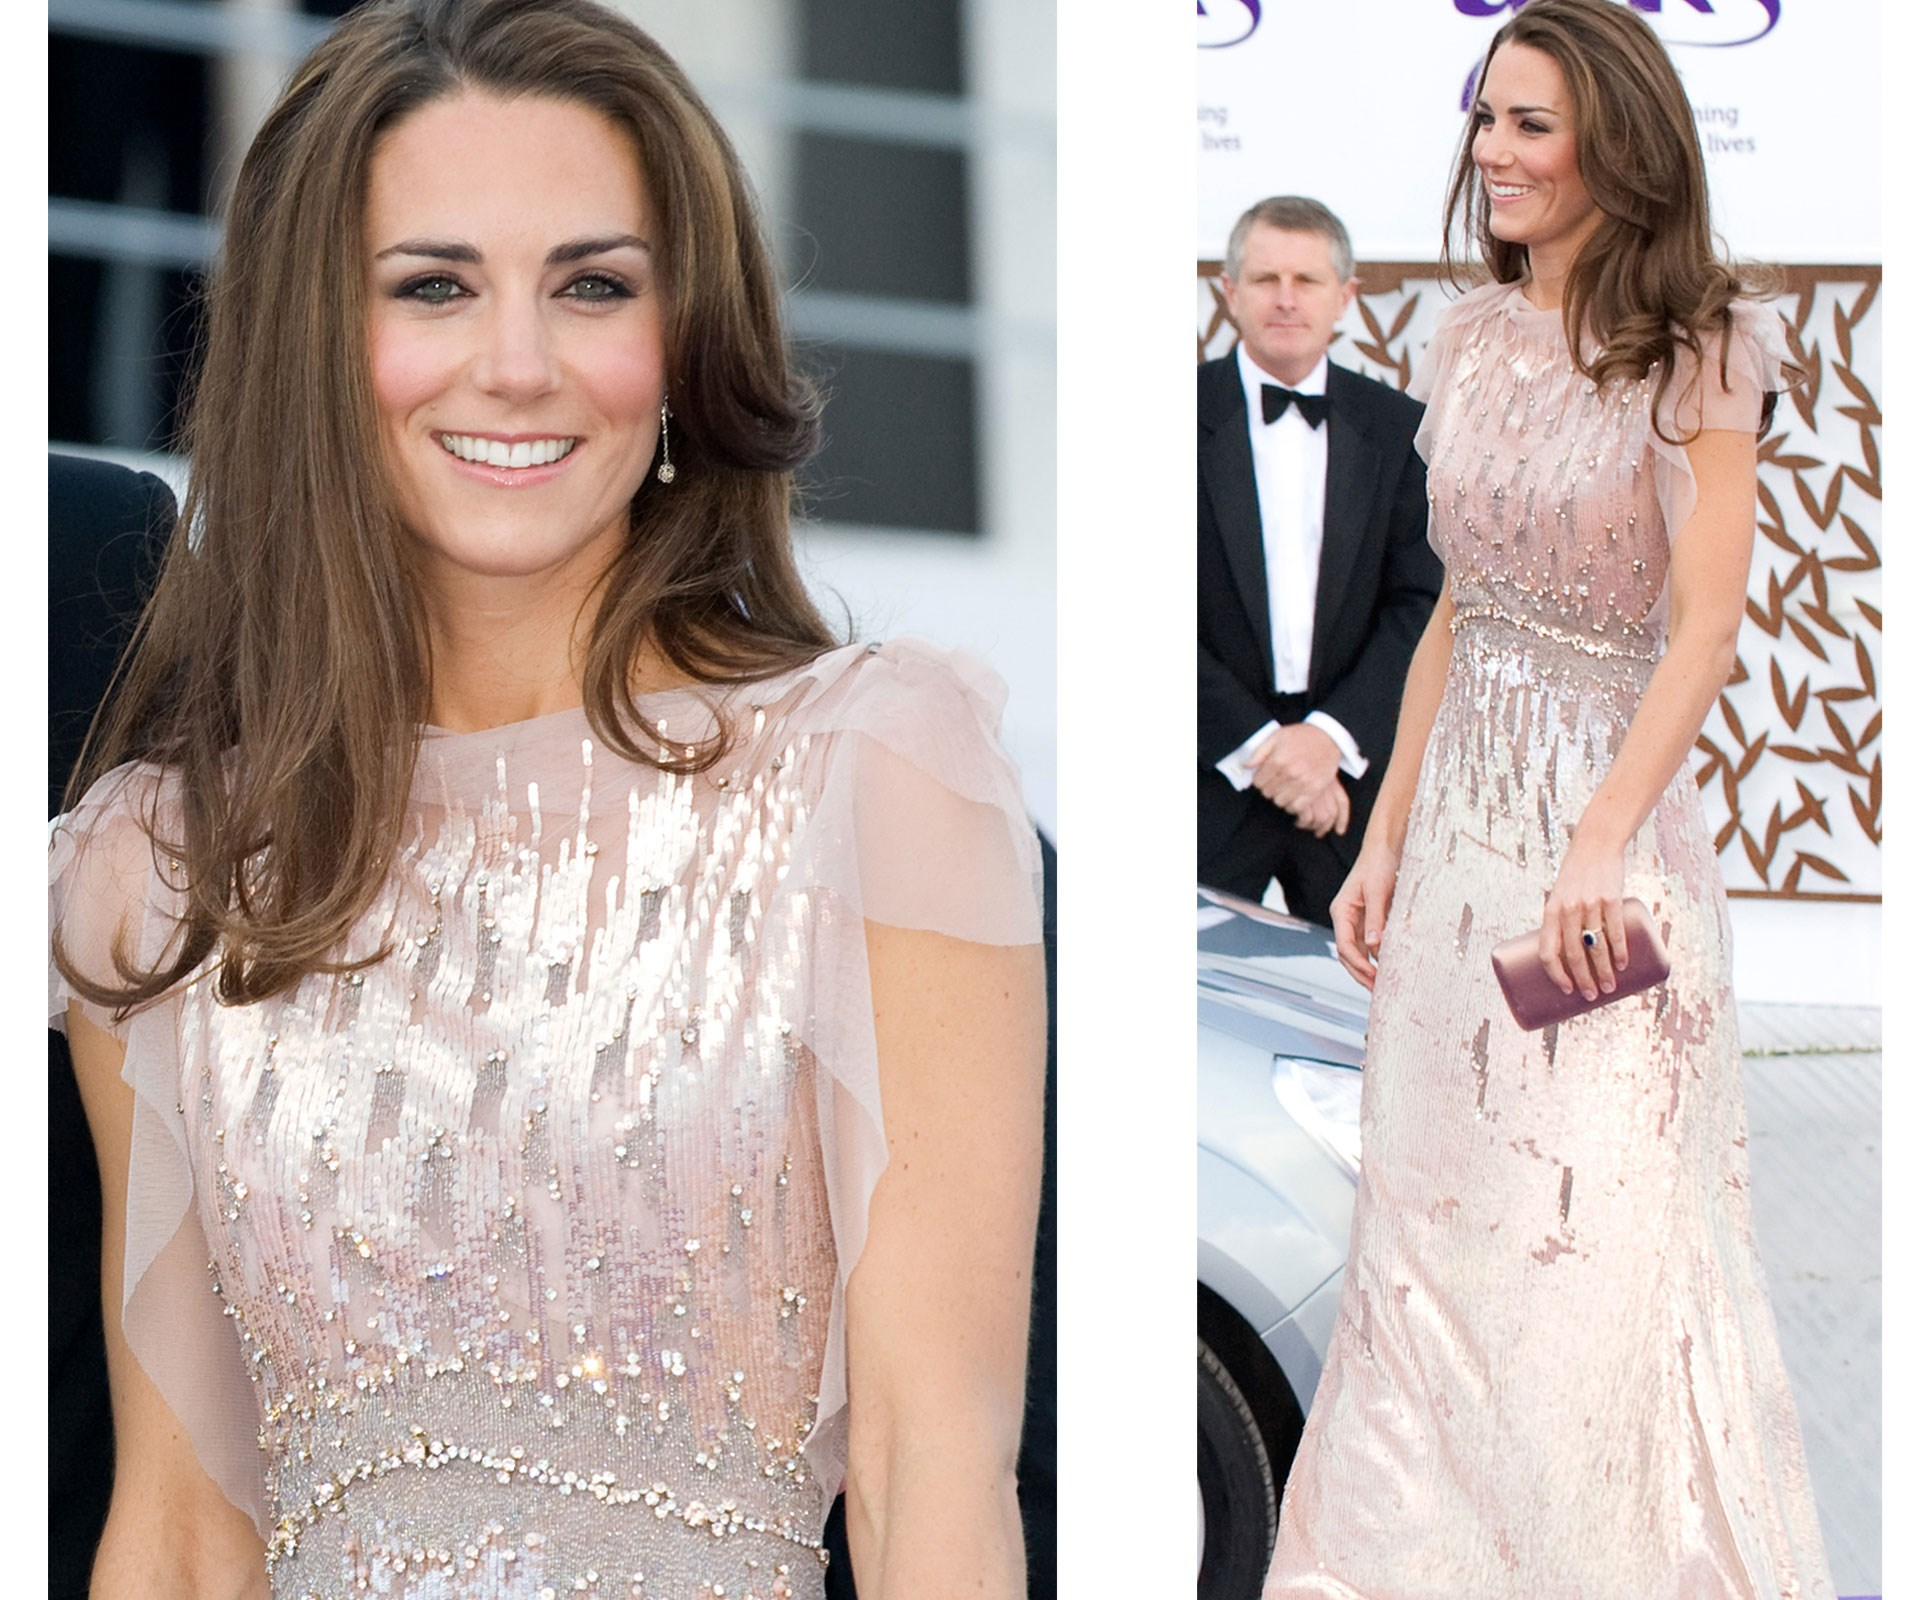 Kate looked radiant in a pale pink, sequin Jenny Packham dress at the ARK Gala dinner at [Kensington Palace](http://www.nowtolove.com.au/royals/british-royal-family/prince-william-and-duchess-catherine-confirm-london-move-33500) in 2011. She wore is again in 2016 and we think it's about time it got another run!